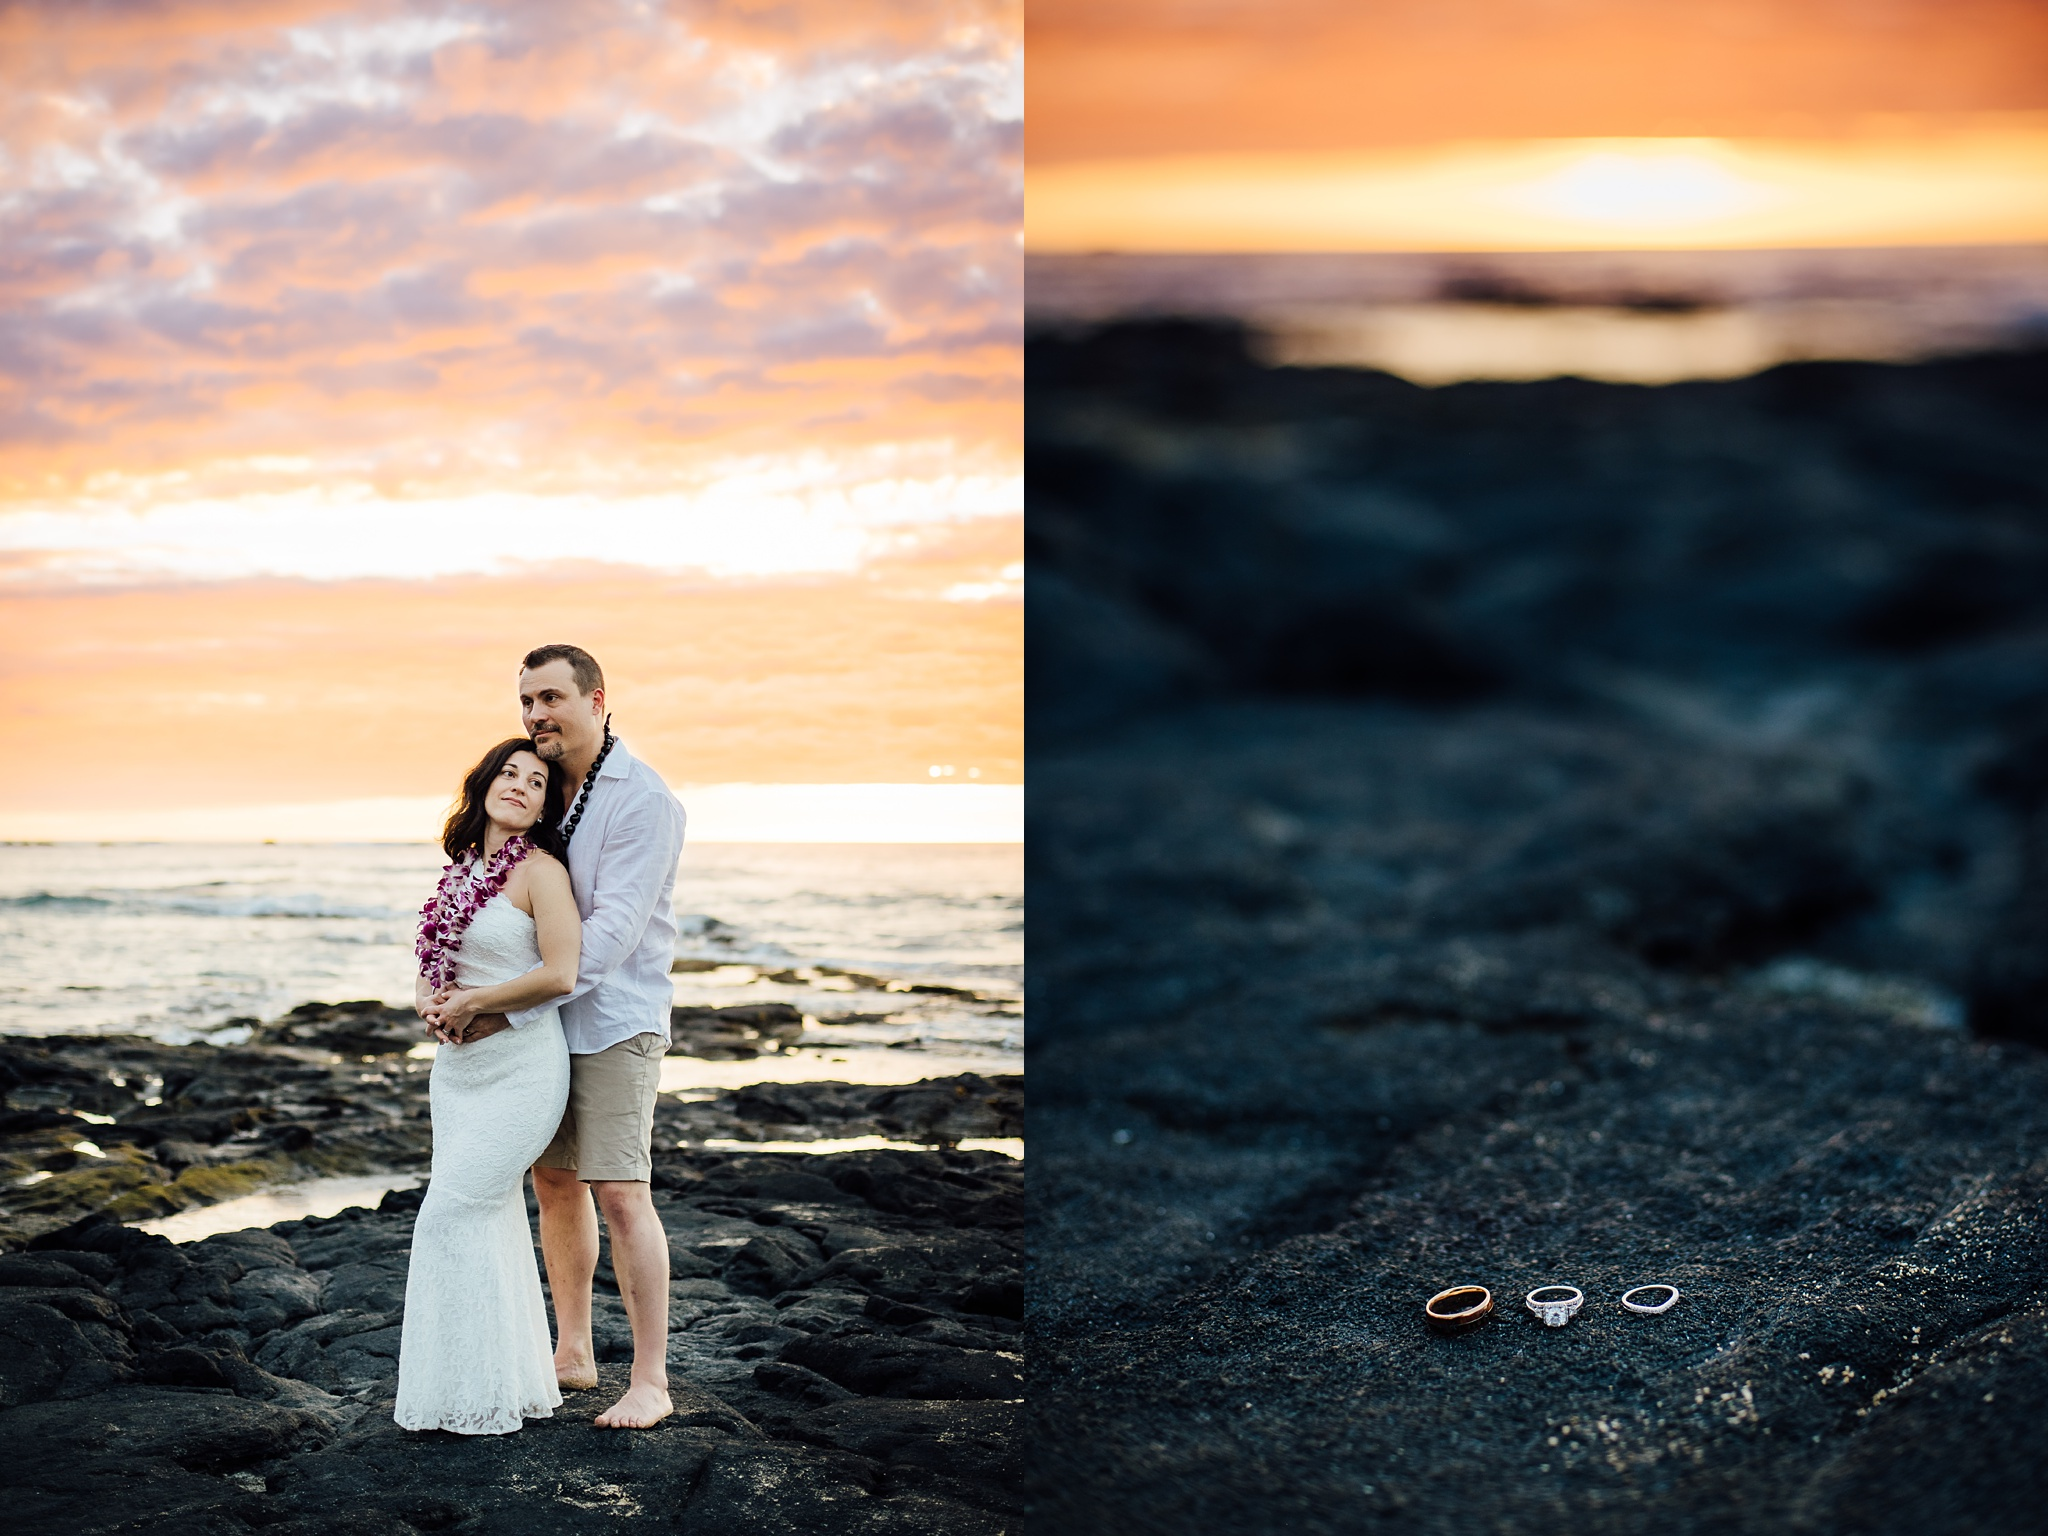 Wedding Rings on lava rocks during wedding day in Hawaii